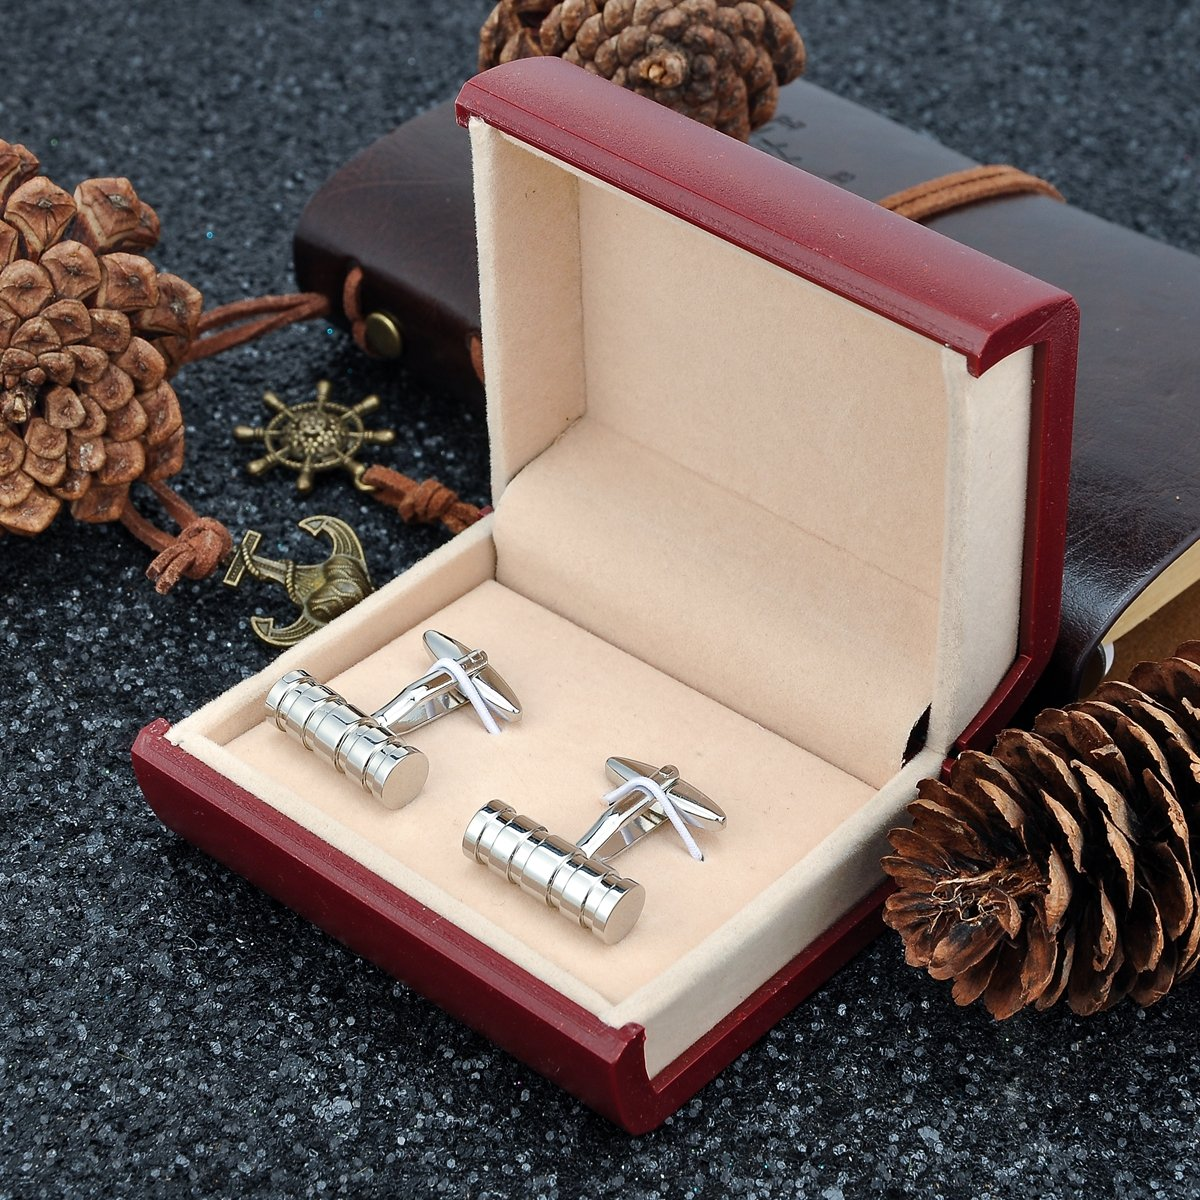 Men's Classic Cufflinks and Studs for Tuxedo Shirts Business Wedding Formal Kit by Qi Xiang